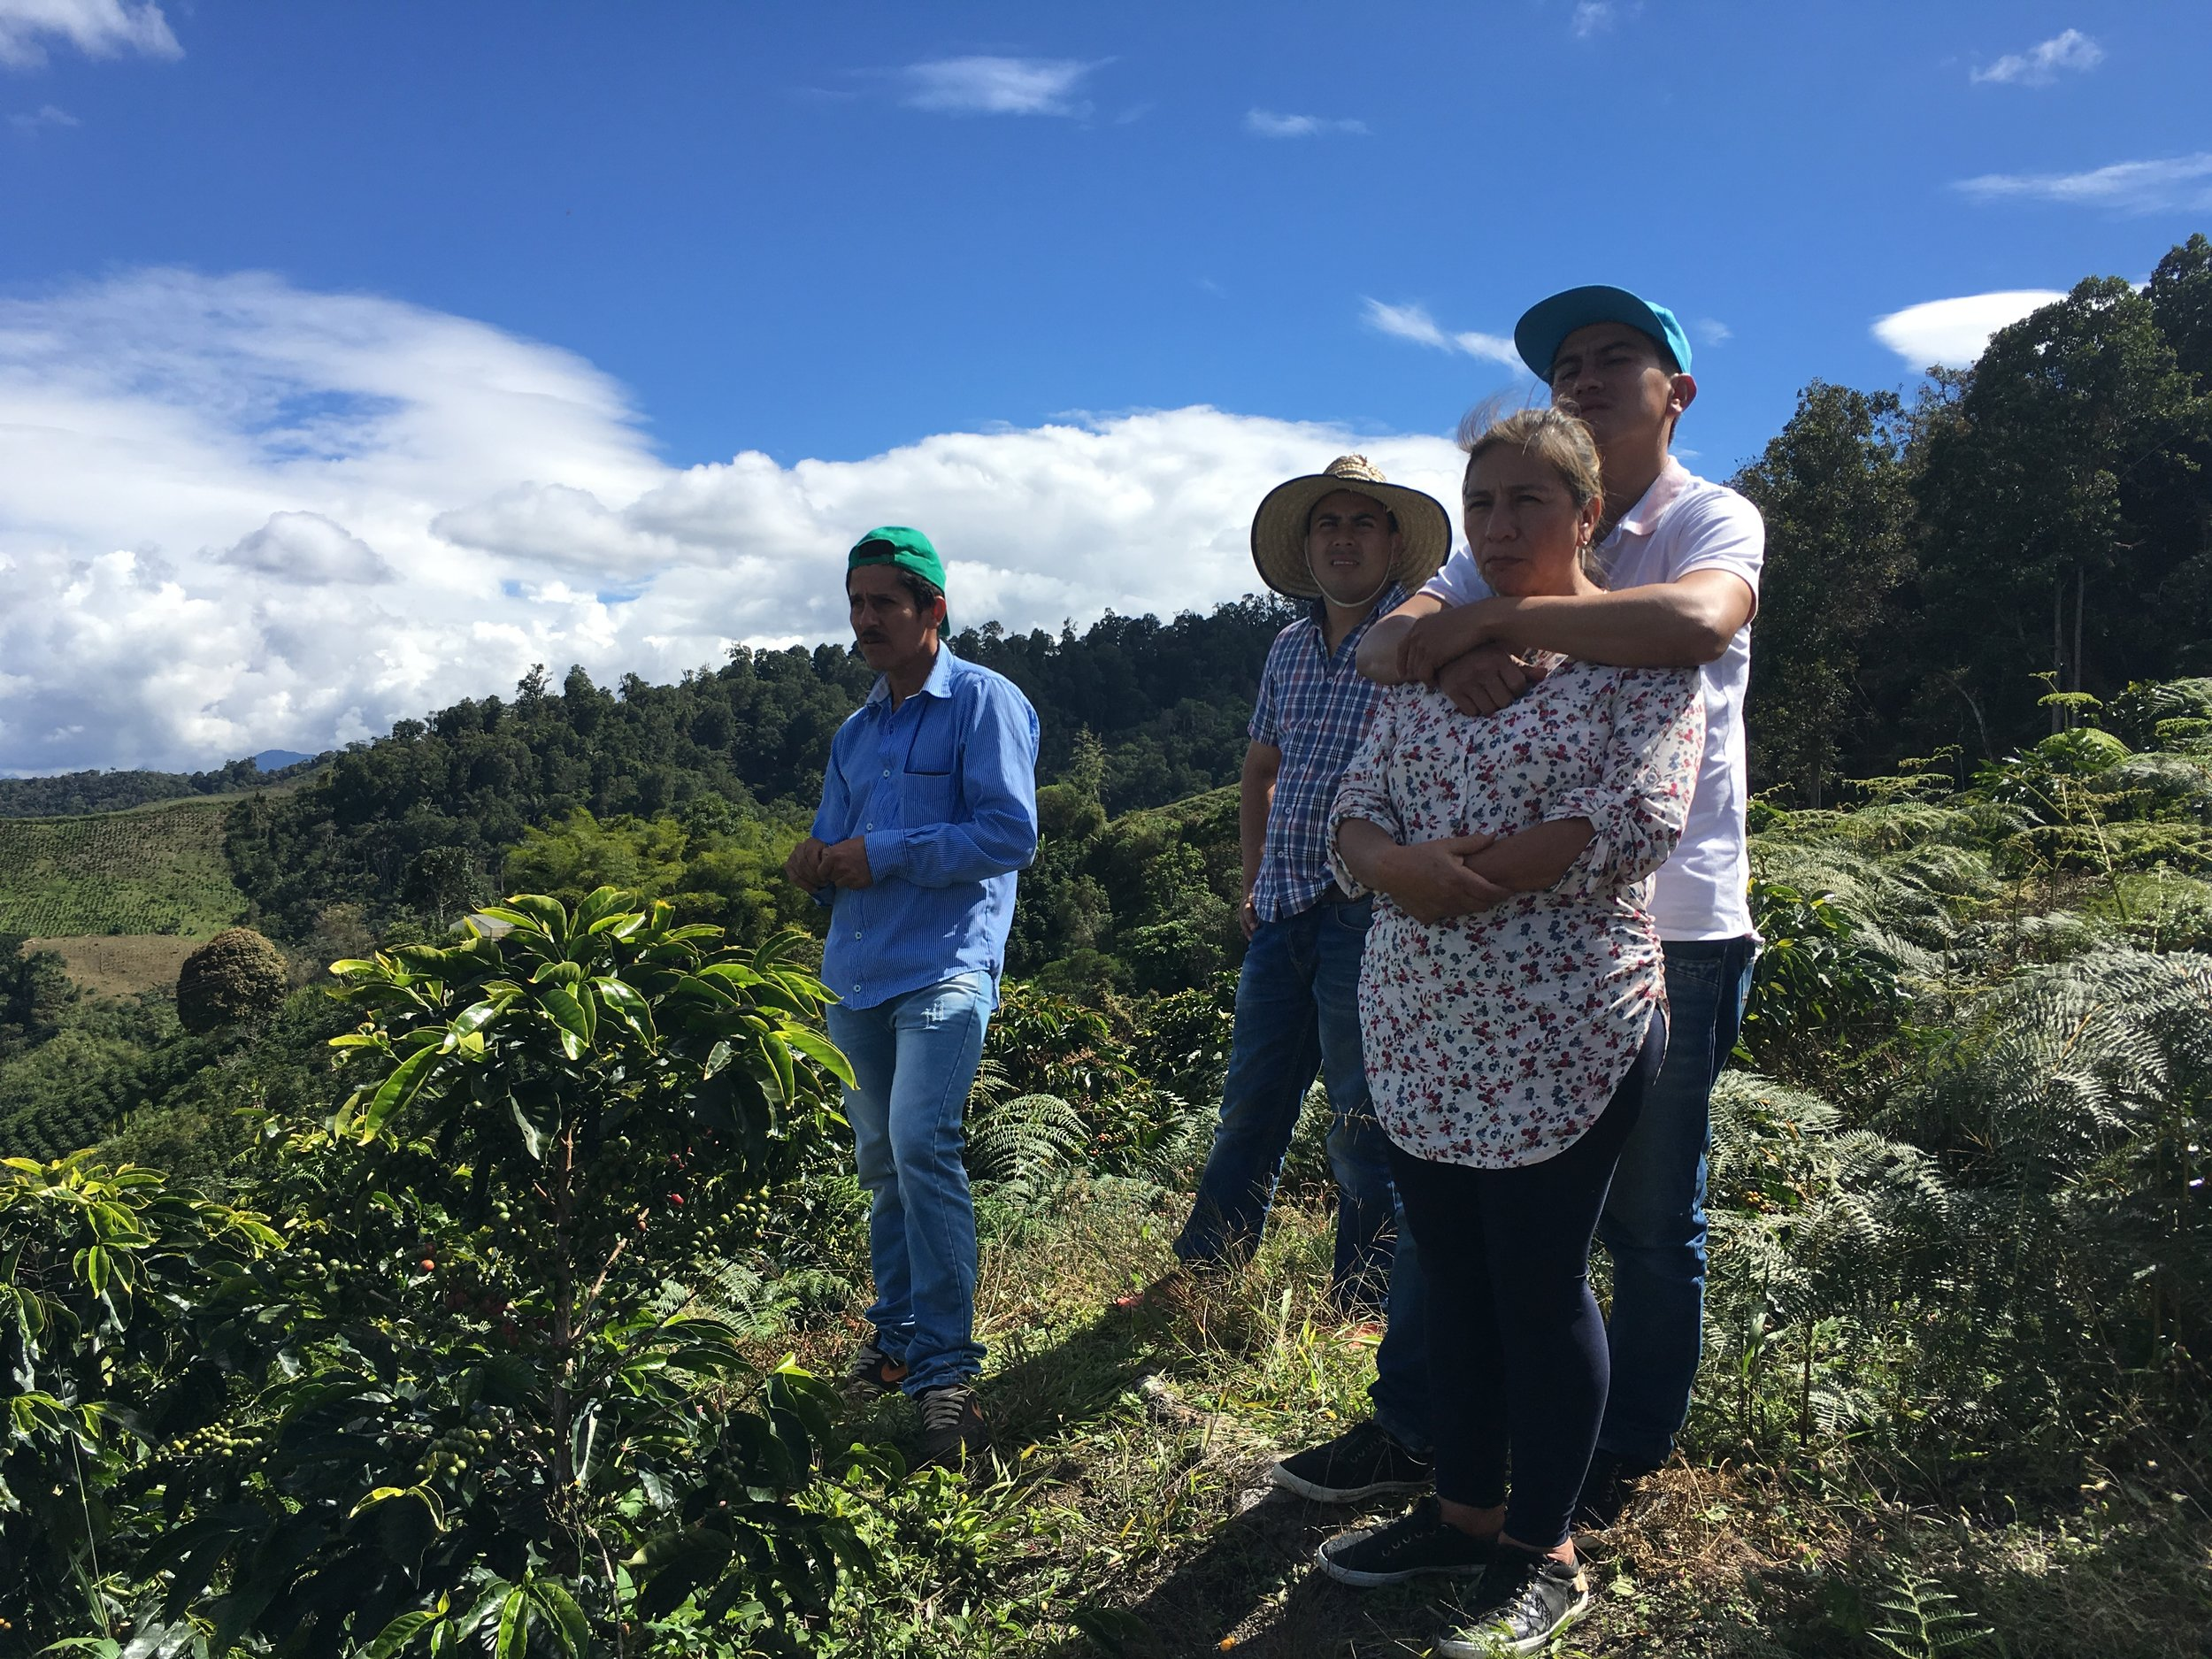 From left: Luis Anibal Calderon, Diego Erazo Martinez, Daniel Erazo Martinez, Maria Bercelia Martinez. Maria and her family are key CCS partners in the micro-region of Acevedo in Huila, Colombia.